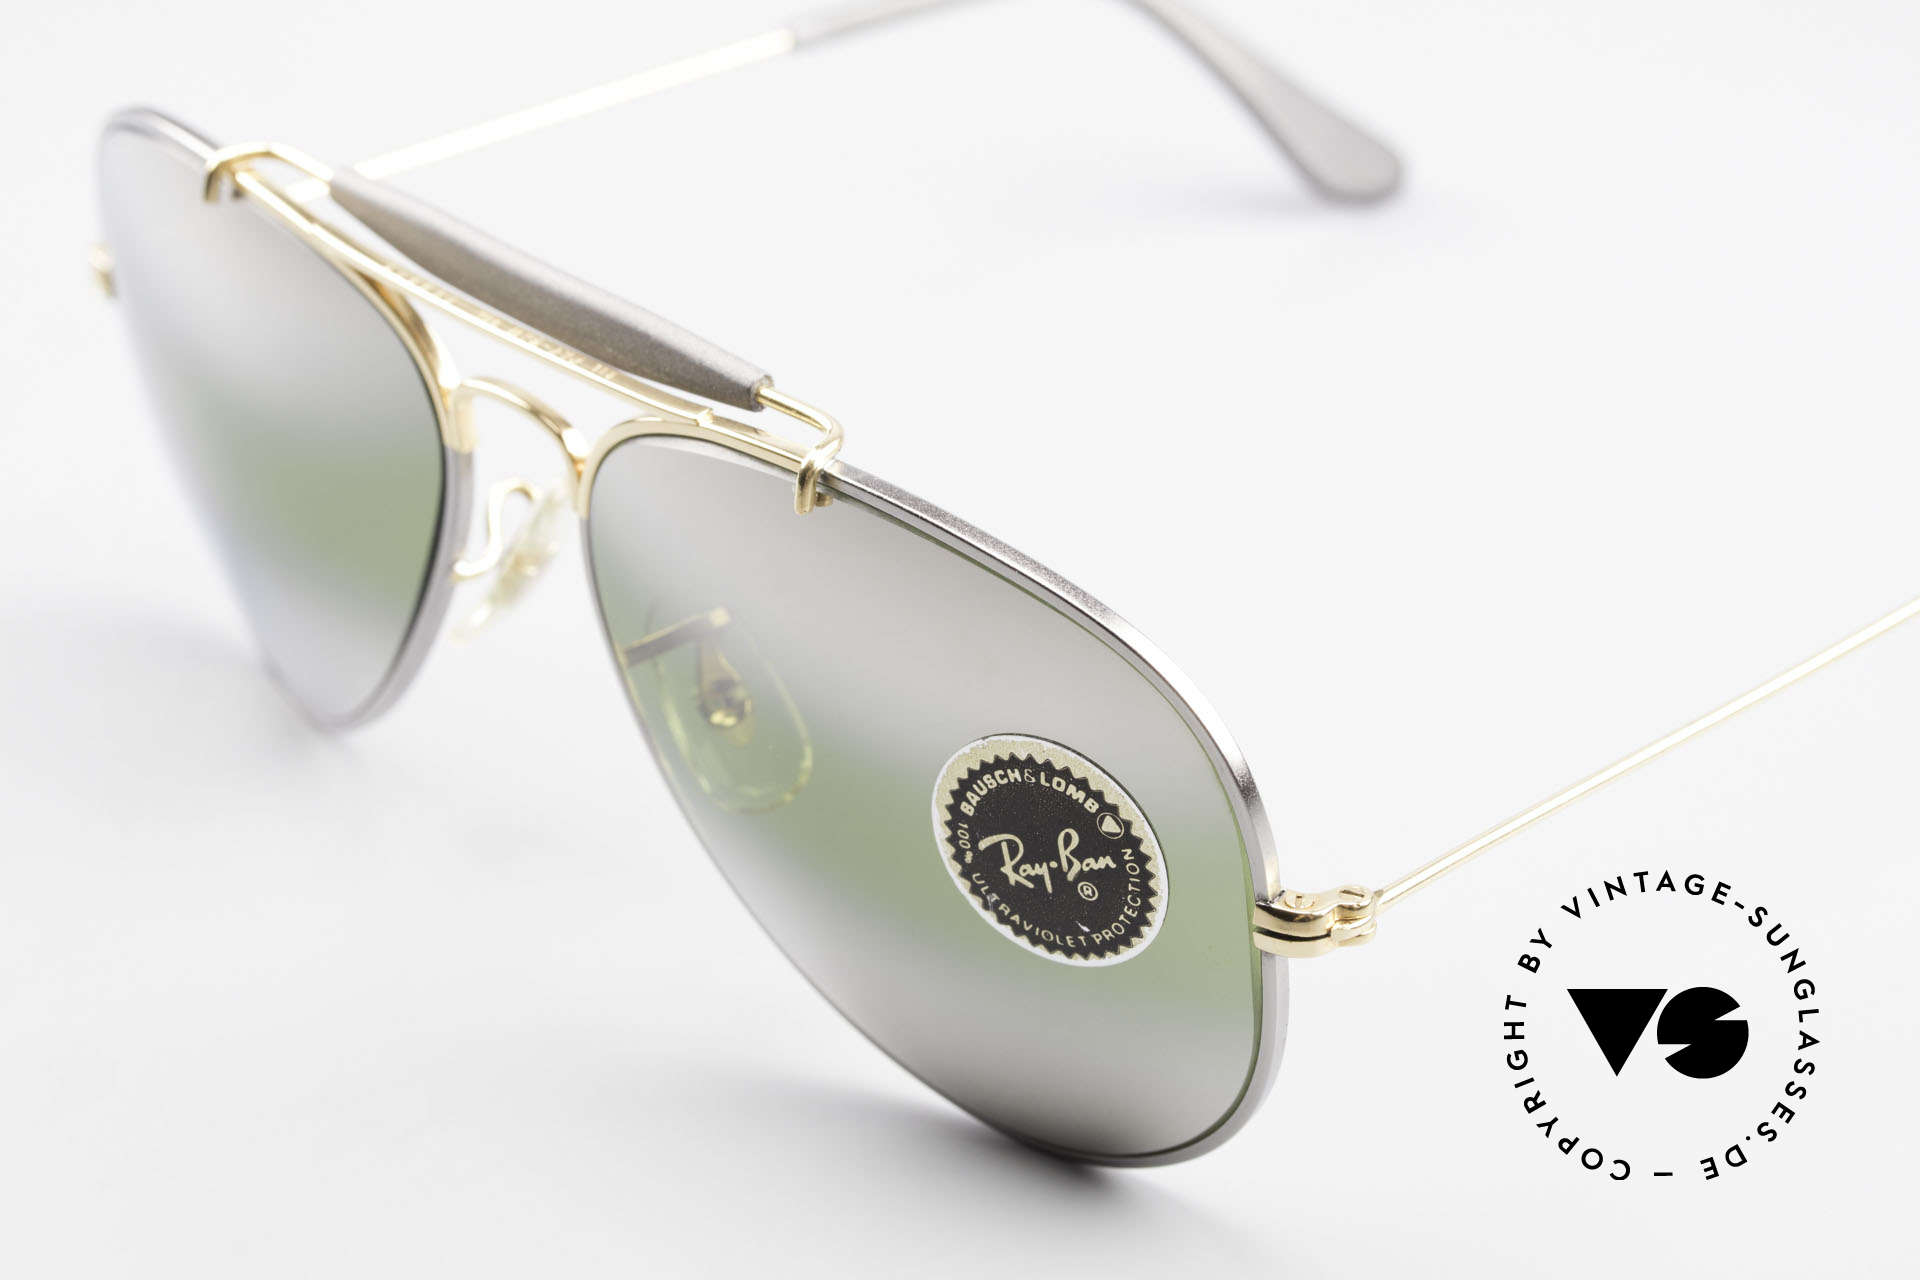 Ray Ban Outdoorsman Precious Greenish Mirrored, made in the 1970's & 80's by Bausch&Lomb, USA, Made for Men and Women